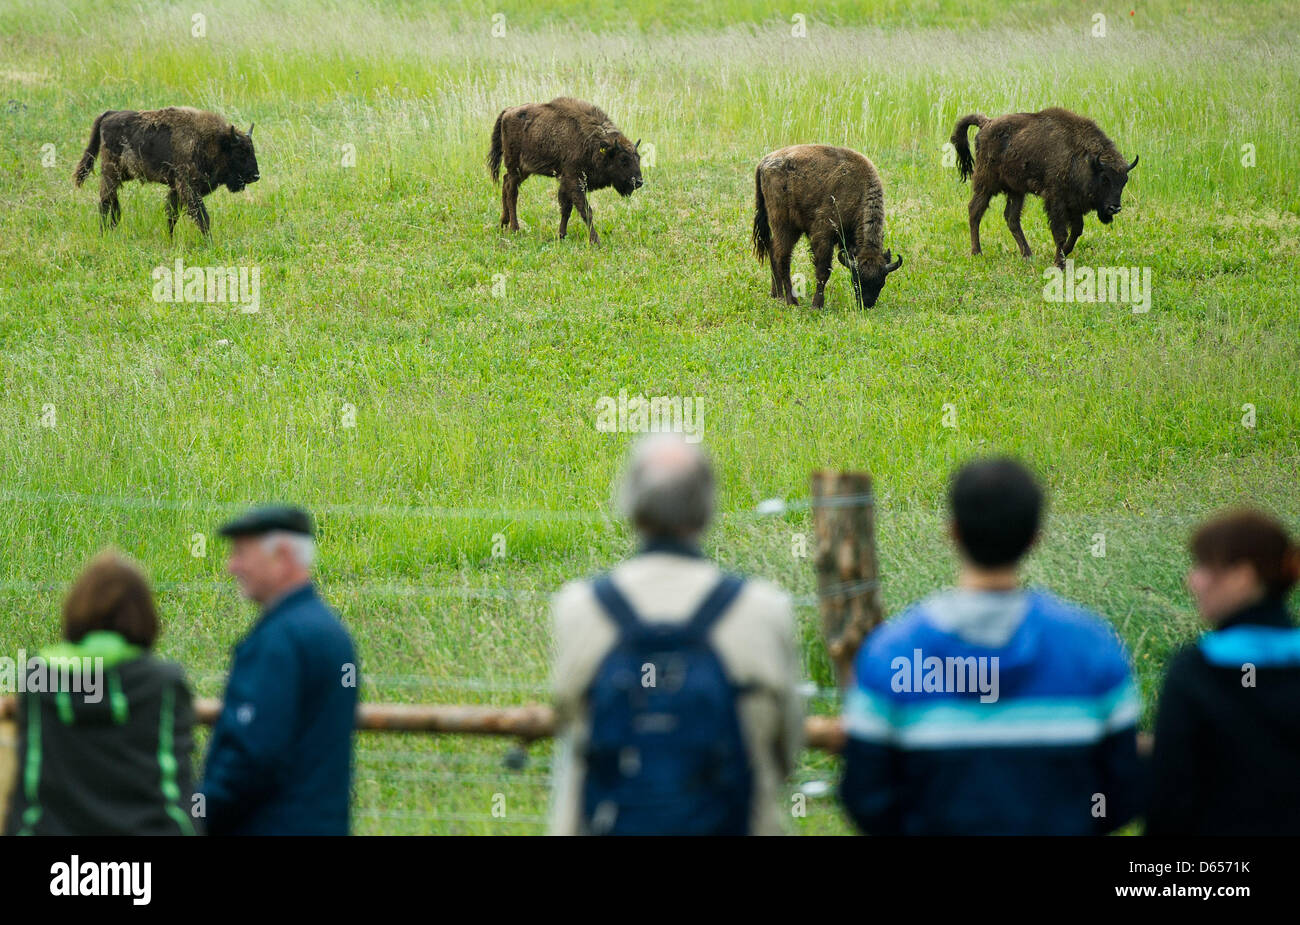 Visitors watch four European bisons (Bison bonasus) on a meadow in the national park Unteres Odertal in Criewen, - Stock Image